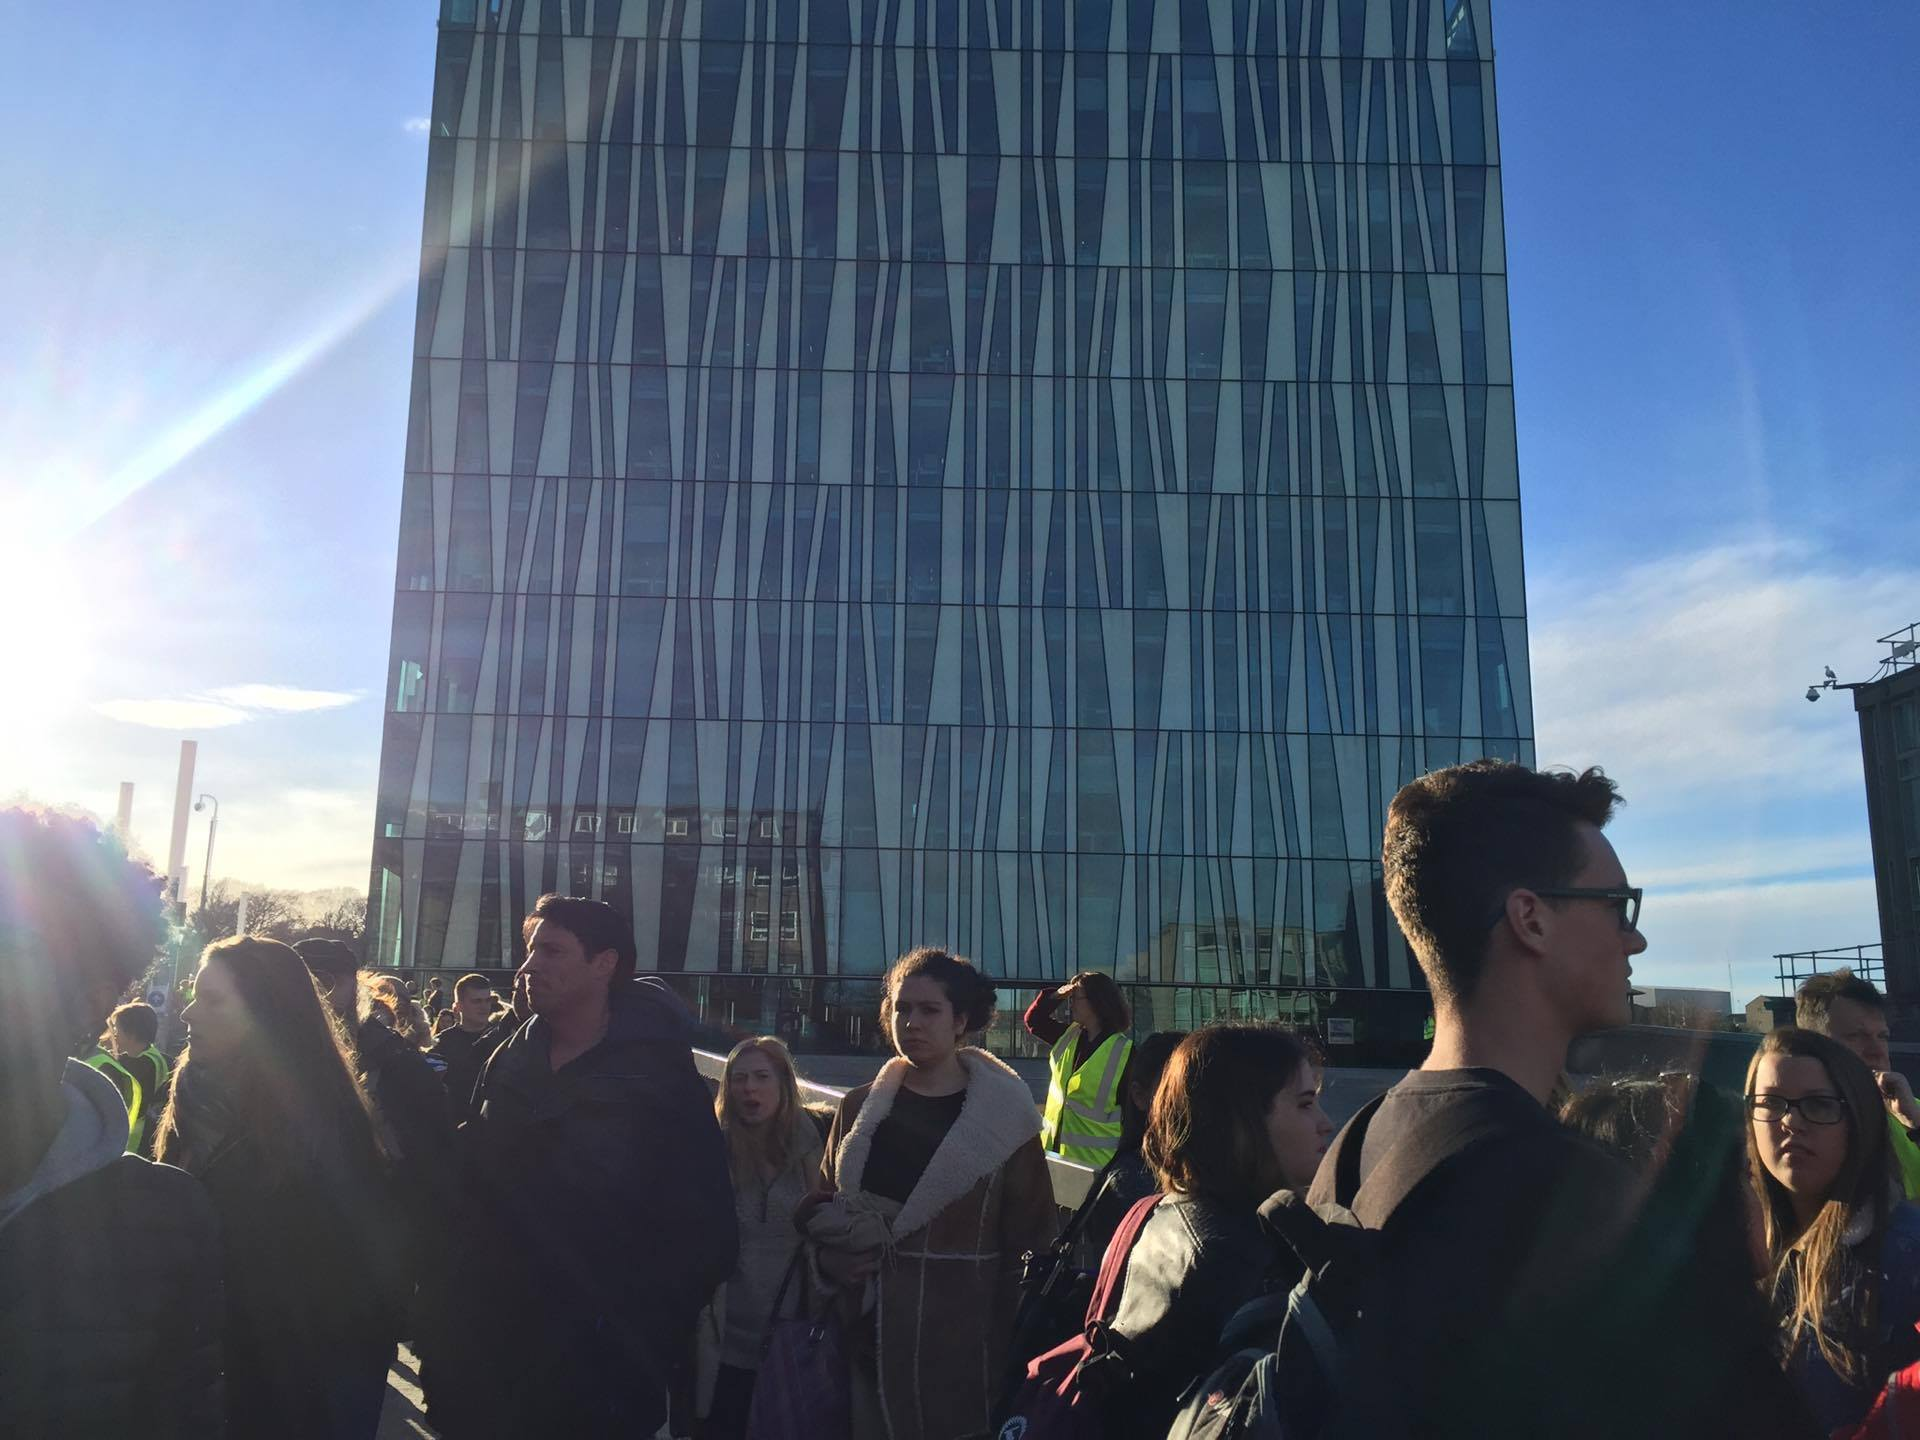 Students are evacuated from the Sir Duncan Rice building